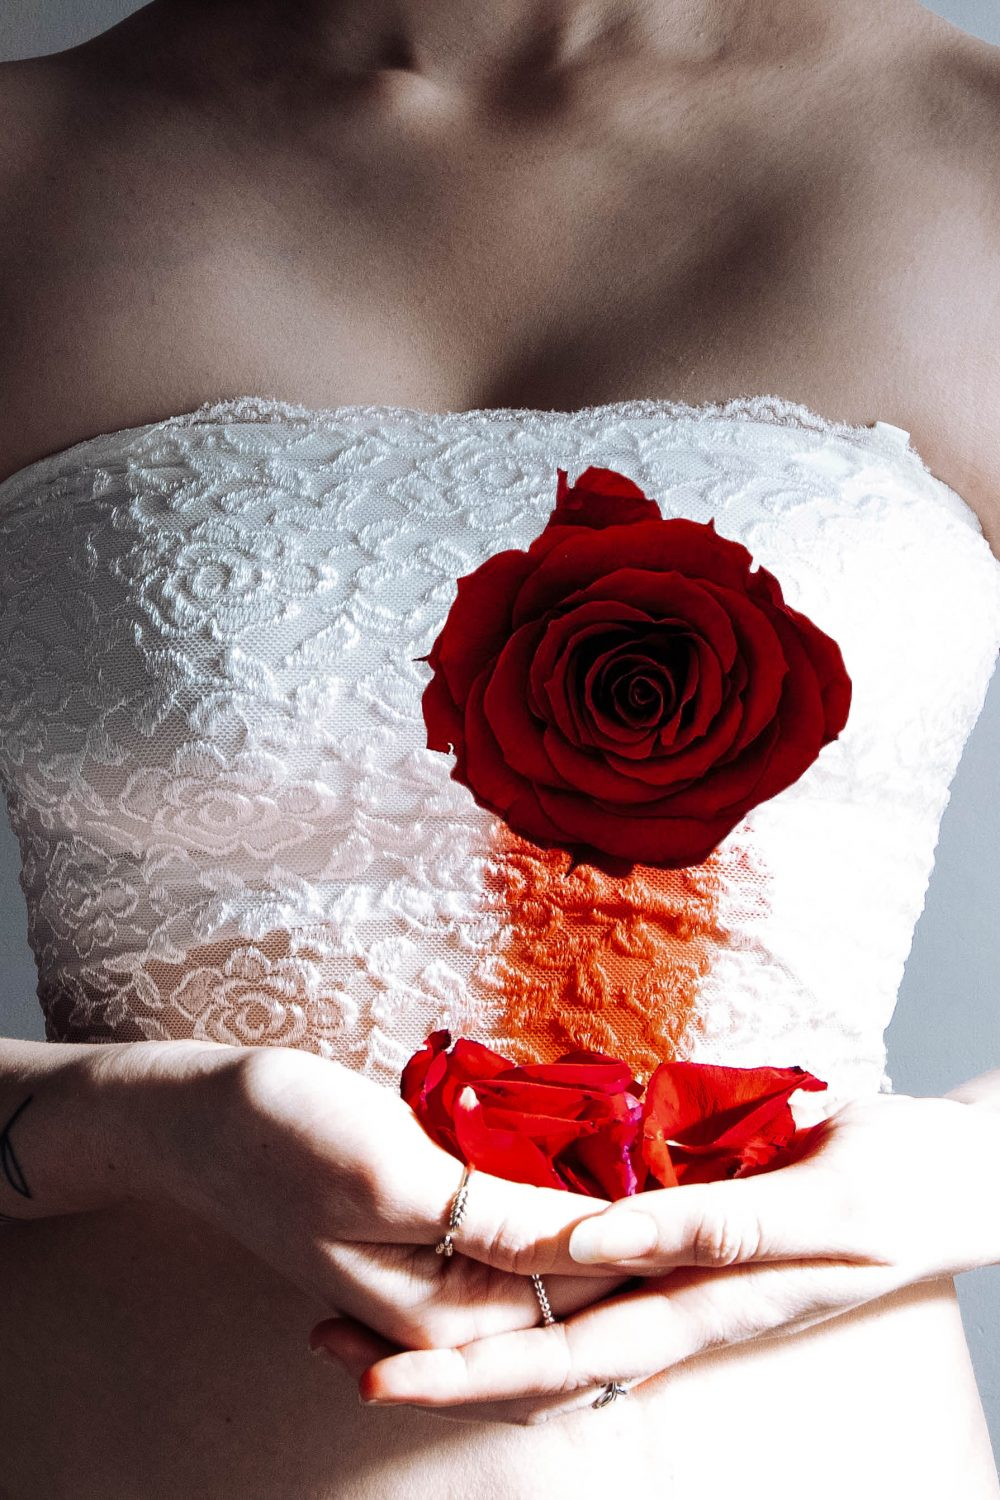 girl with rose as a heart that is beeding